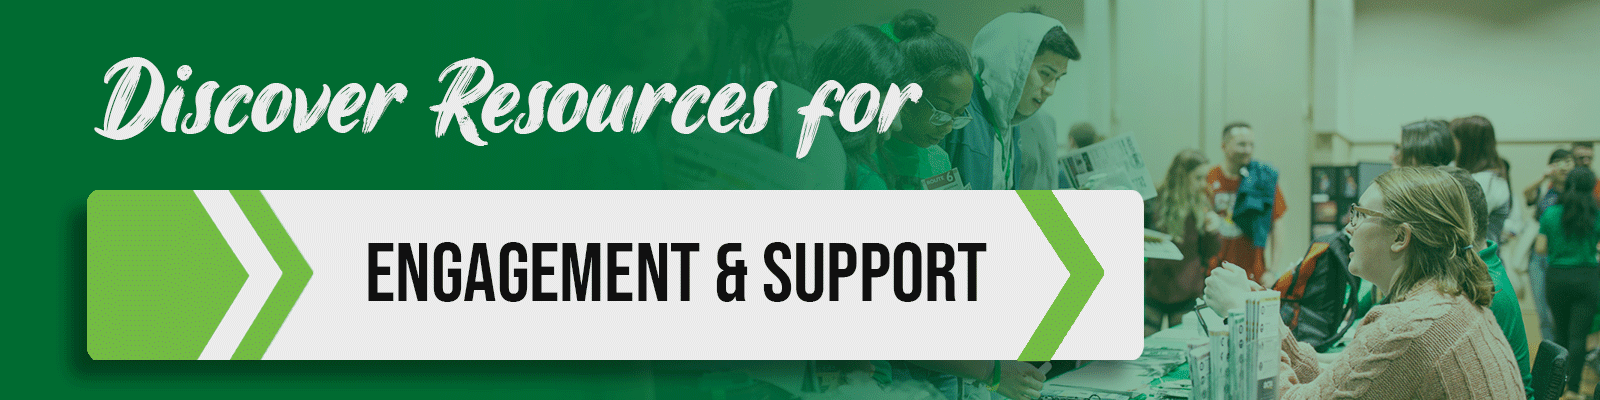 engagement and support programs and services